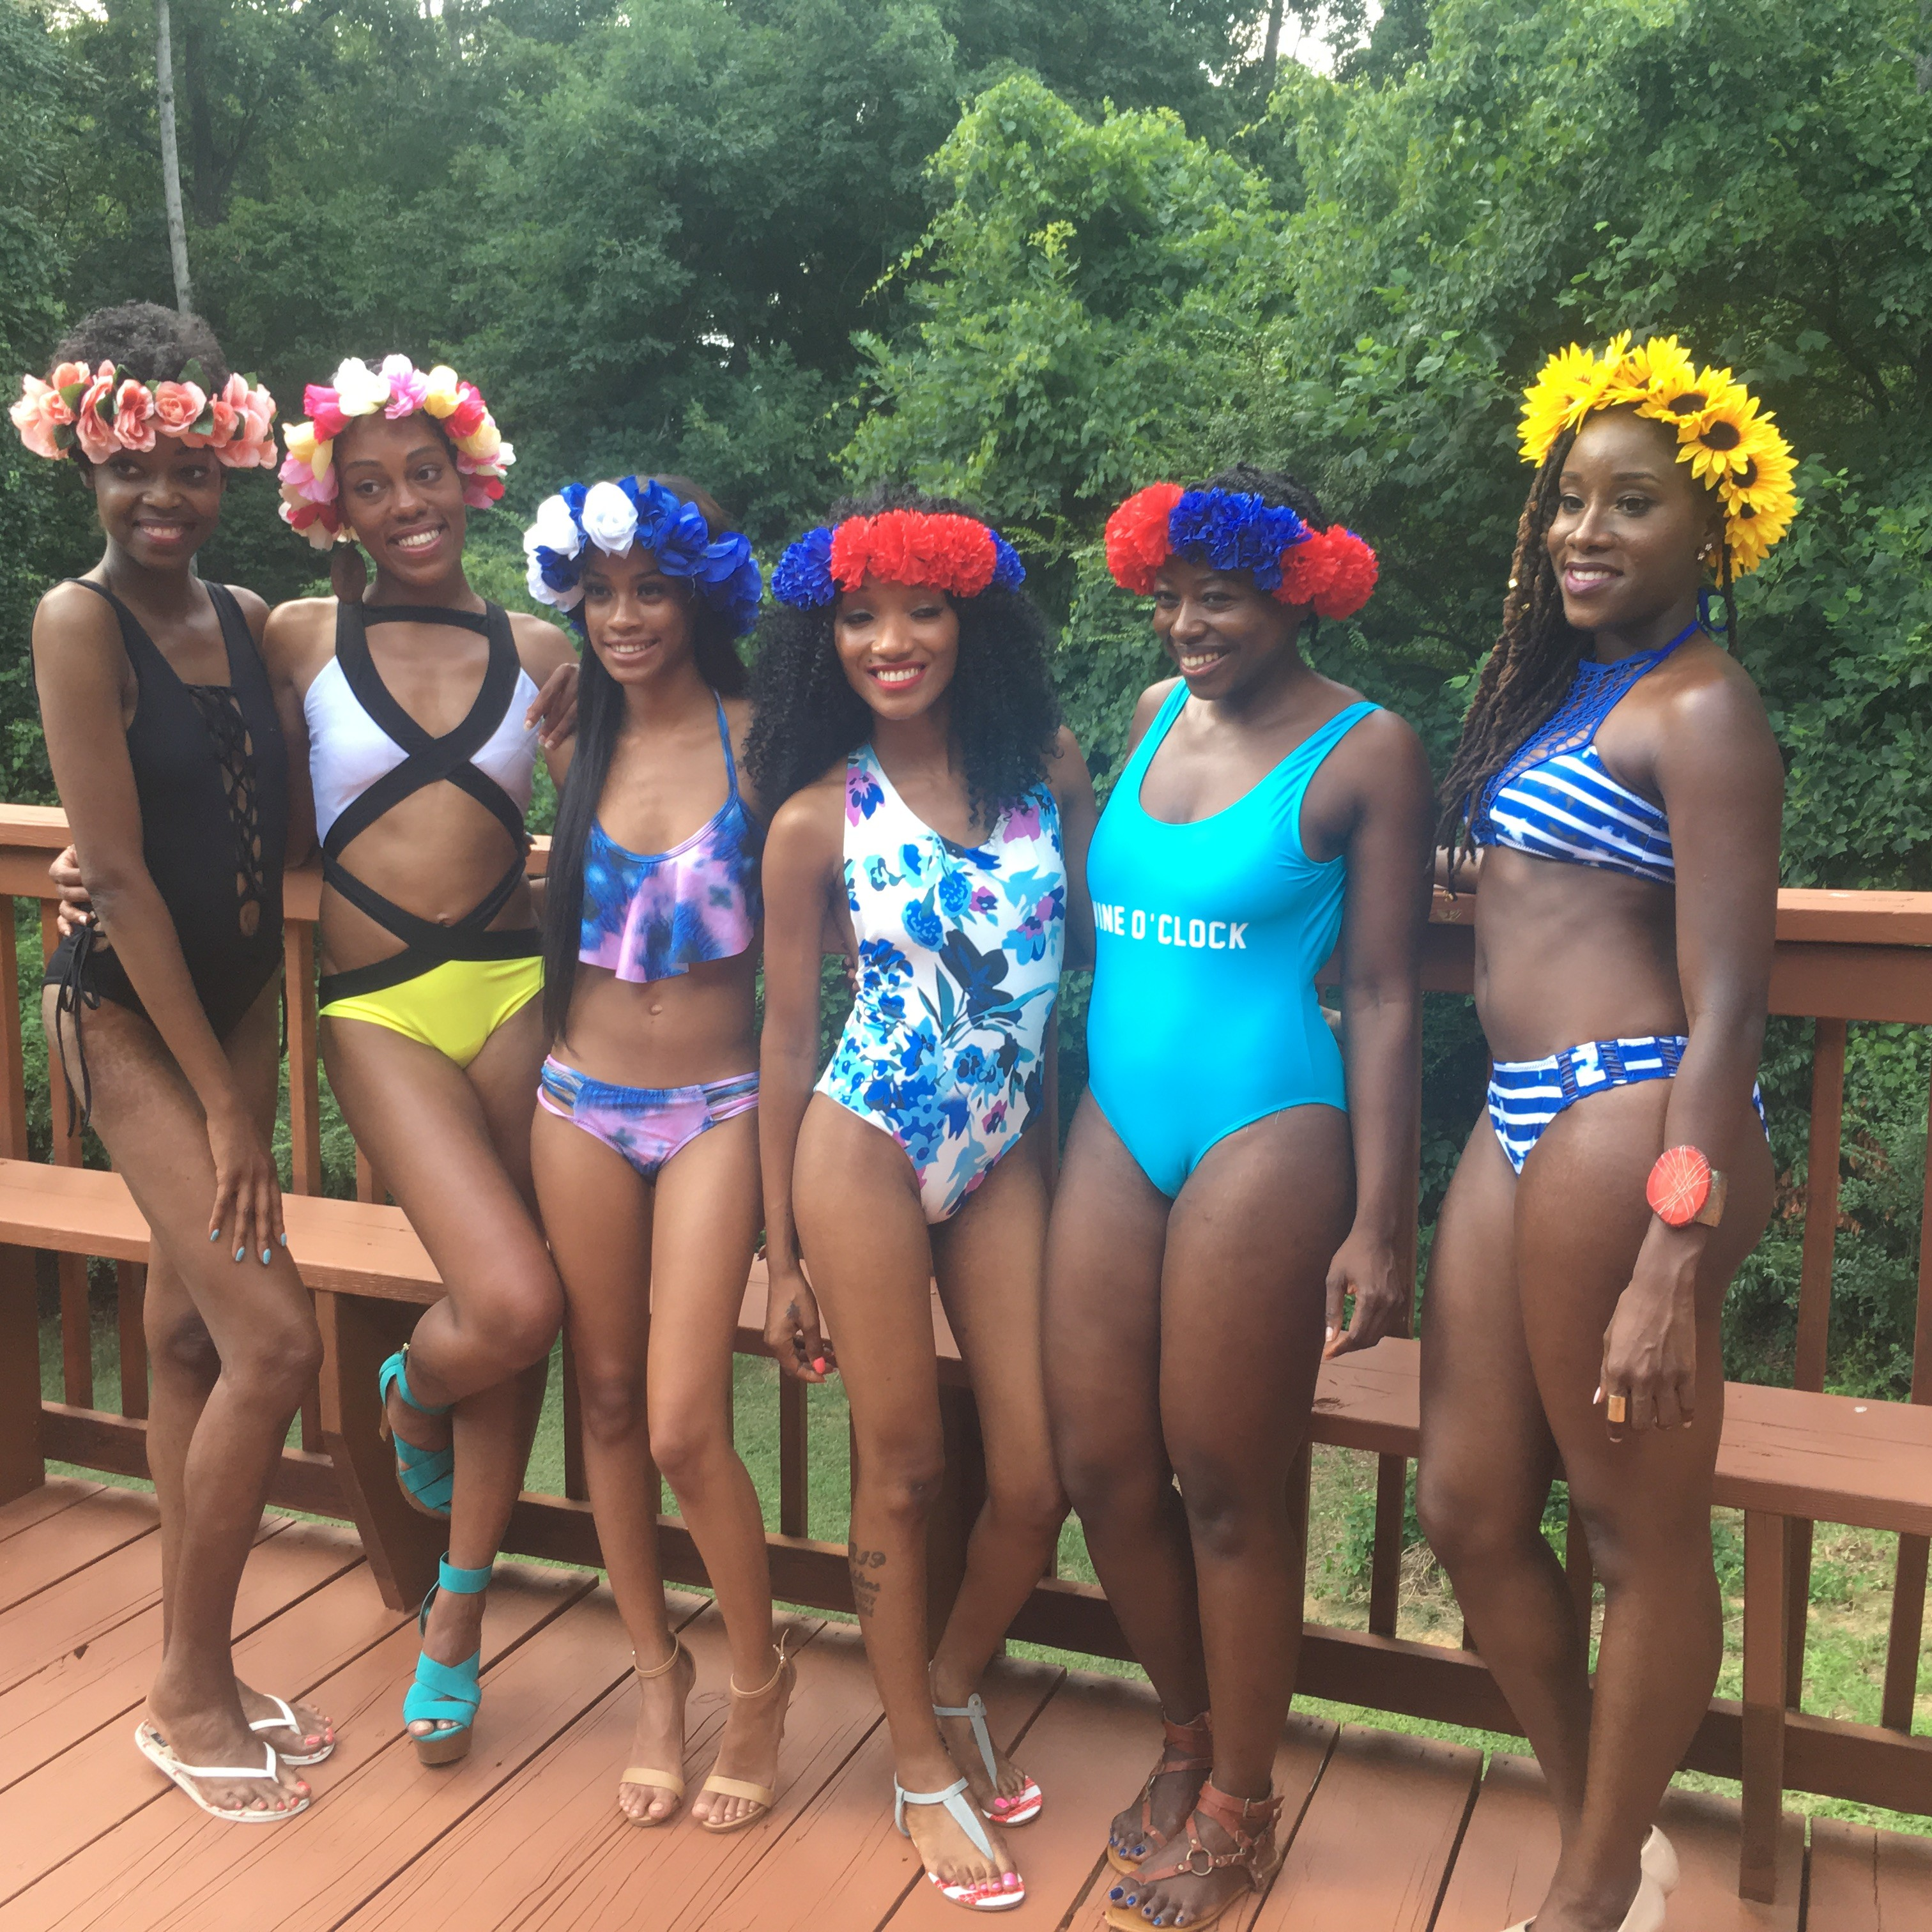 POOL PARTY FUNDRAISER FASHION SHOW